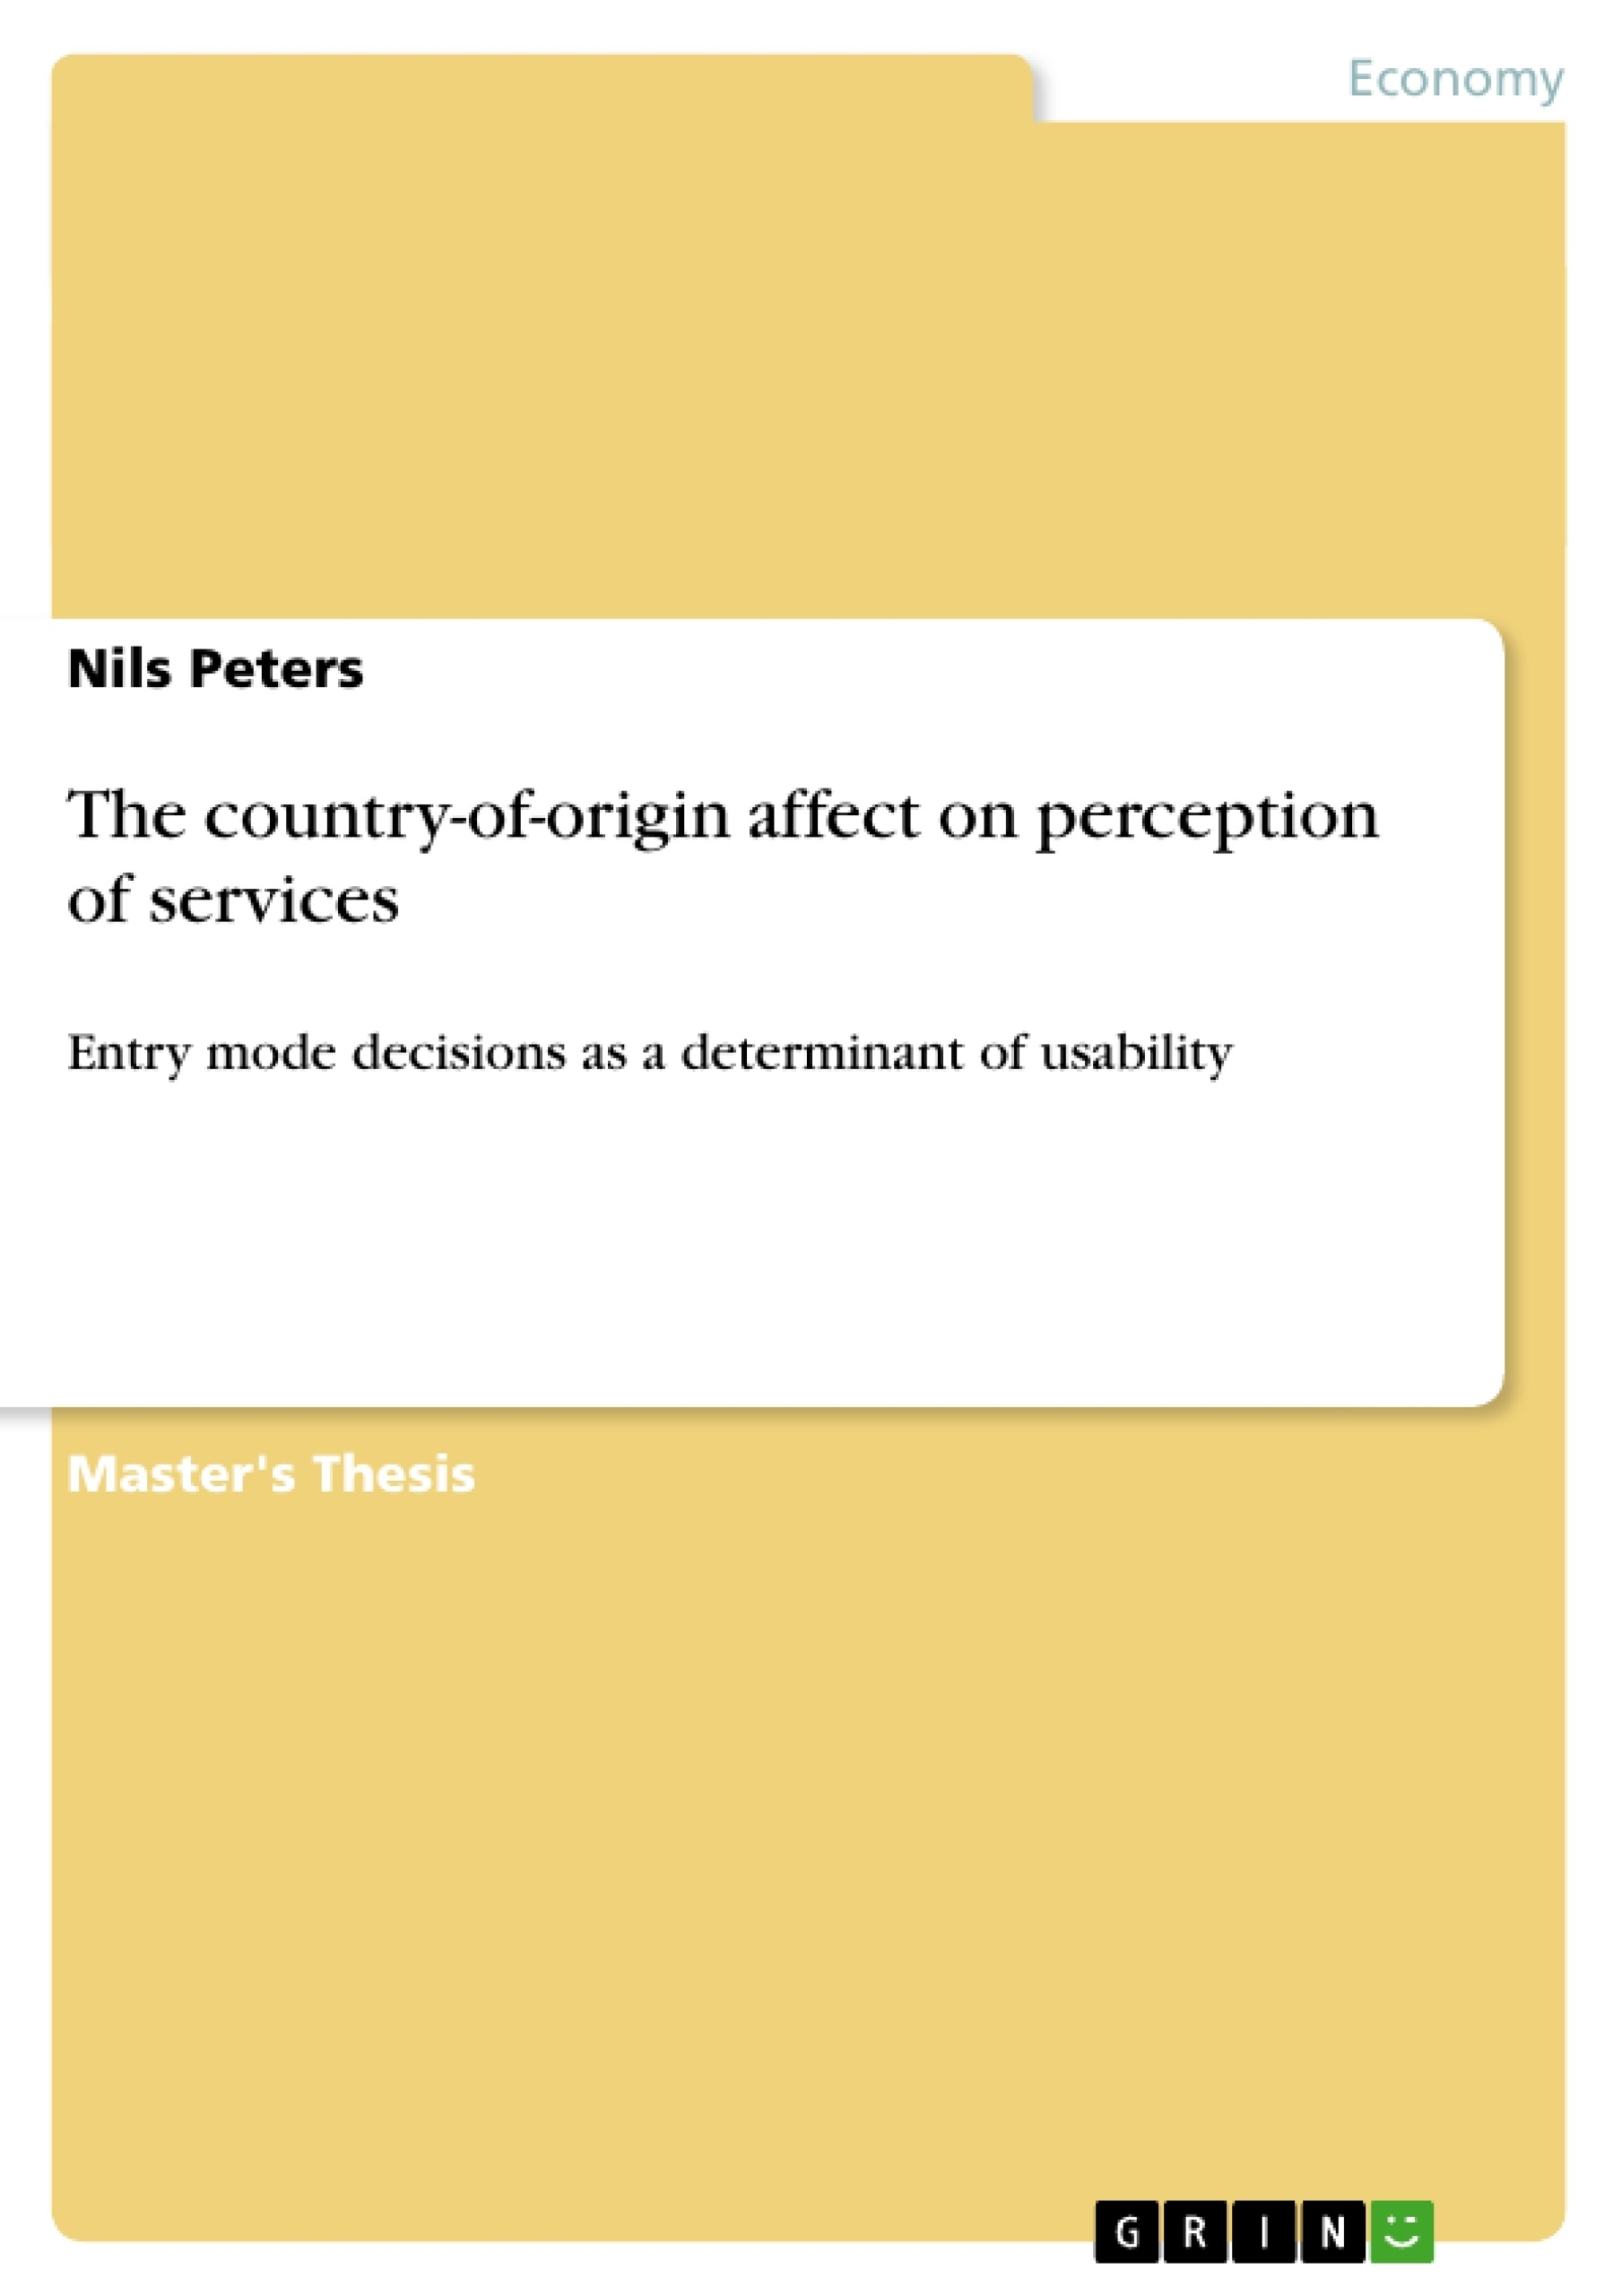 Title: The country-of-origin affect on perception of services